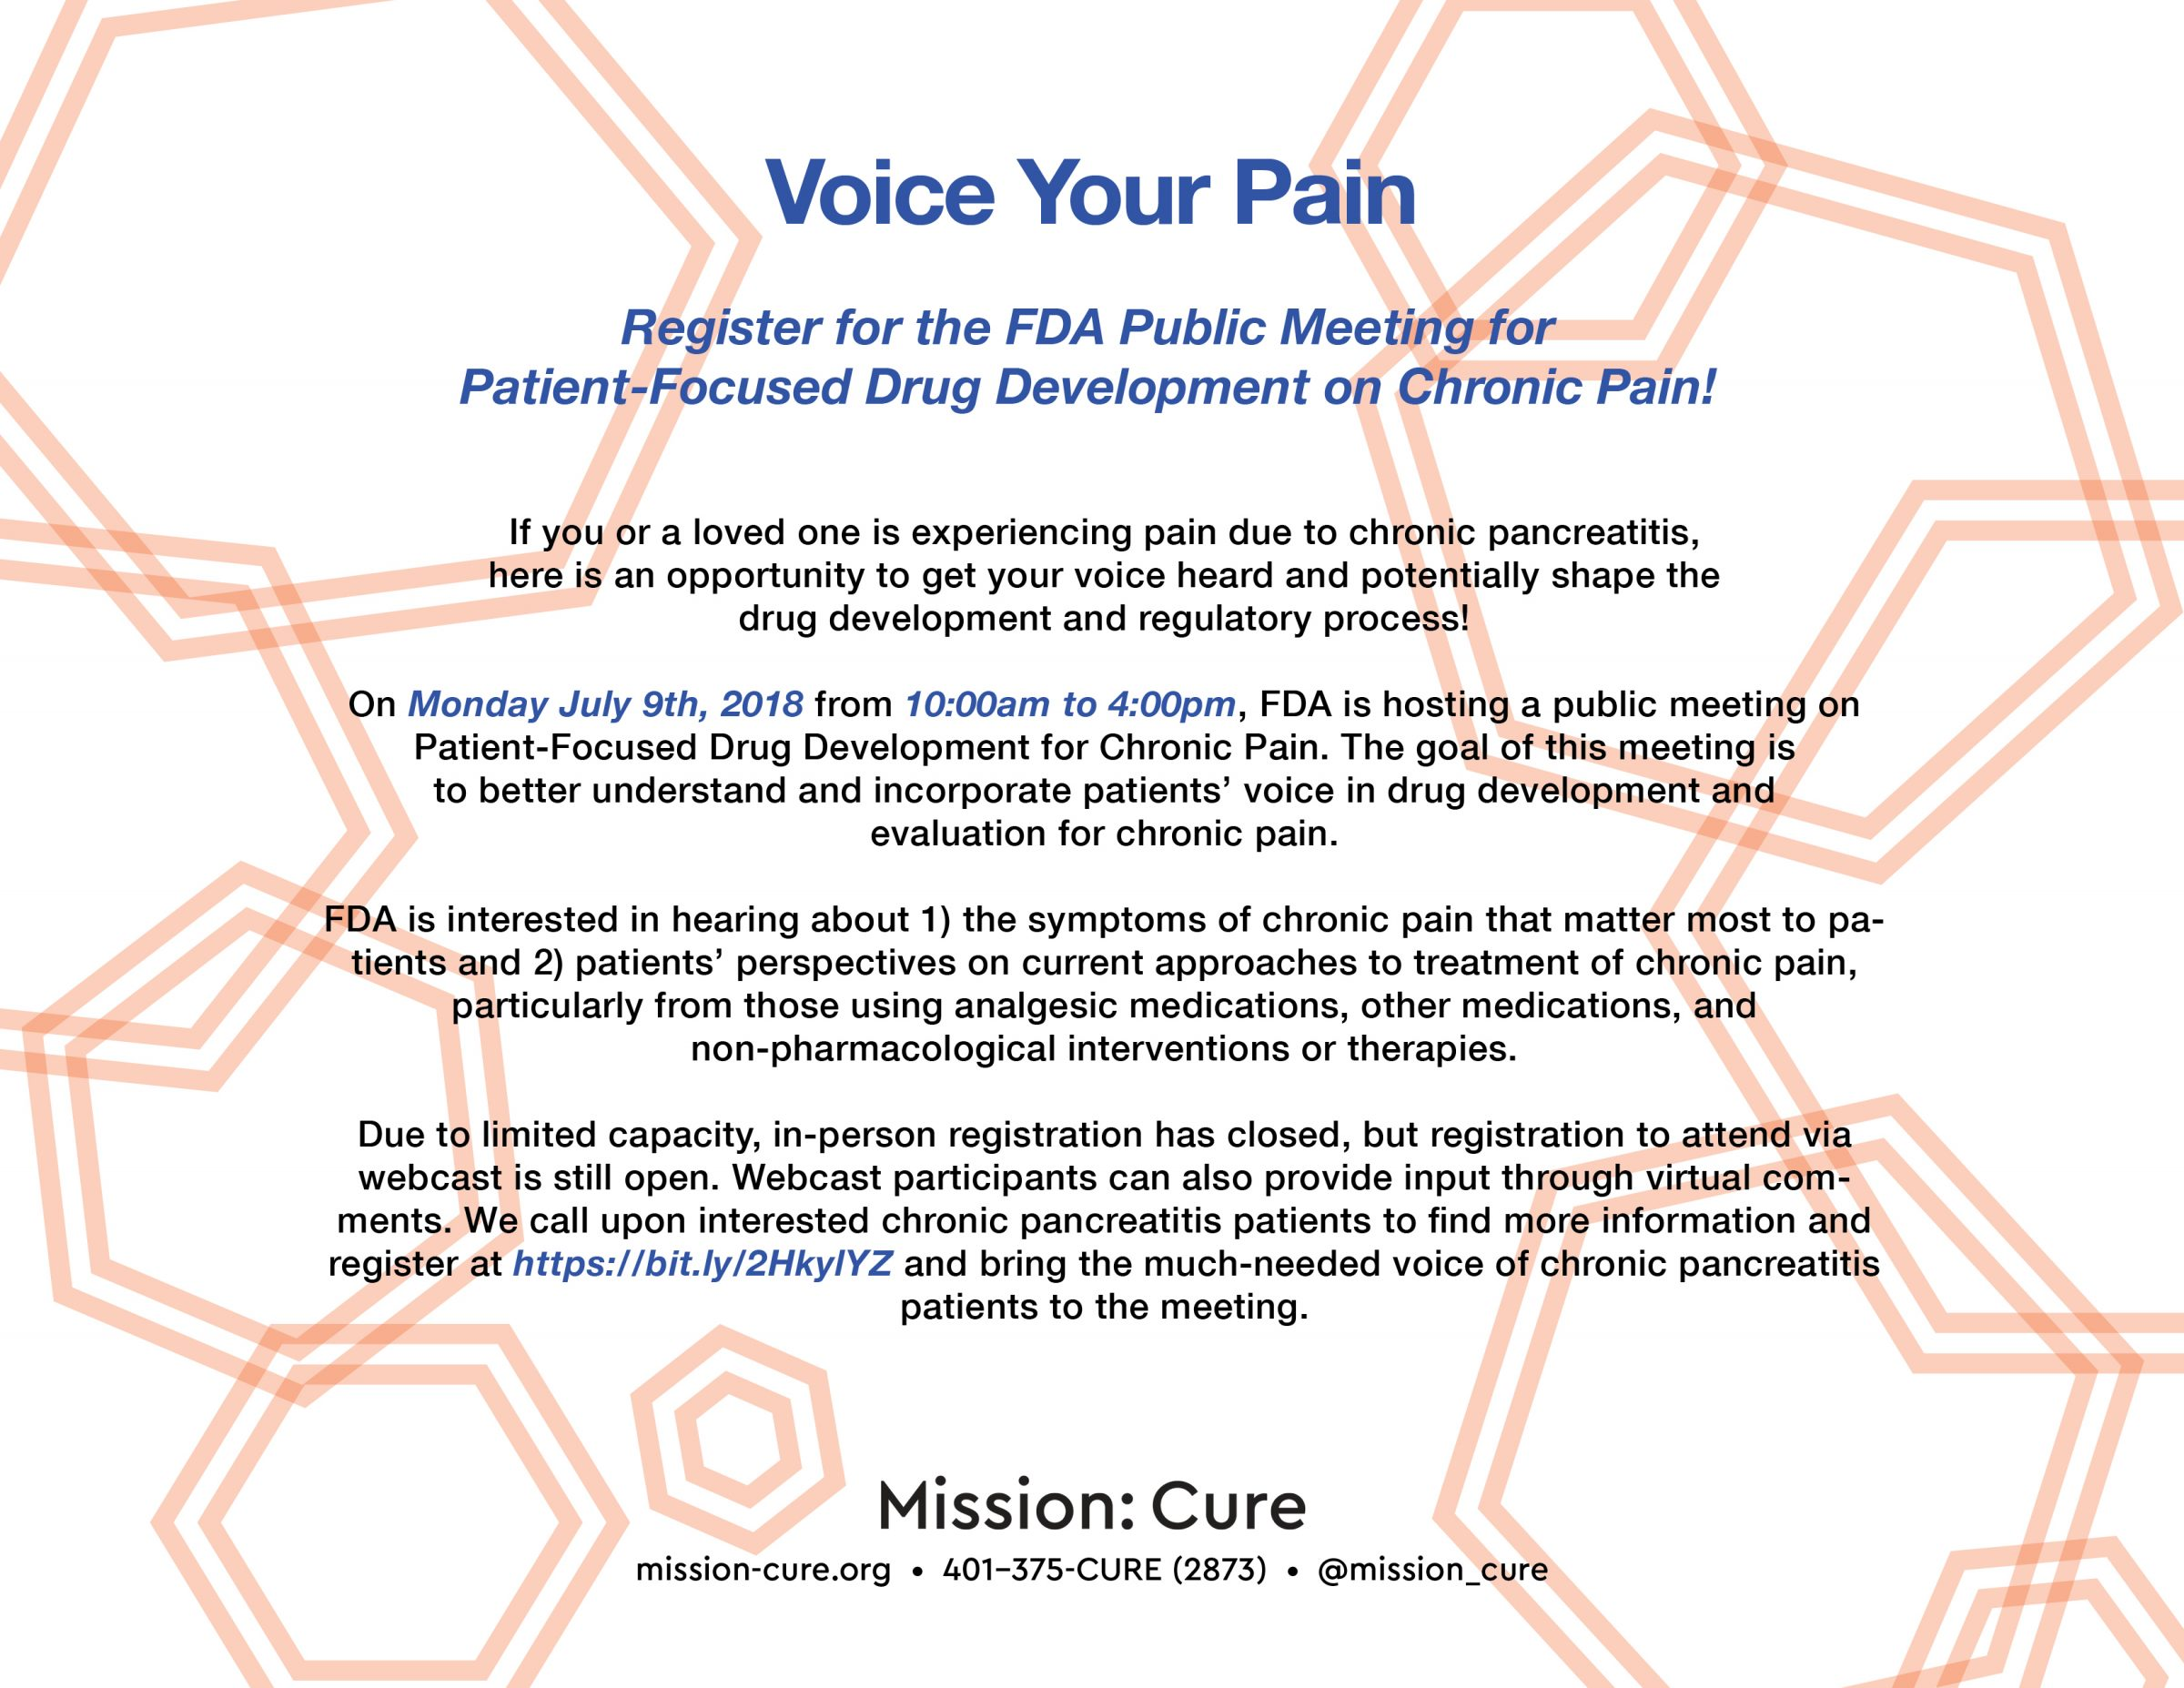 If you or a loved one is experiencing pain due to chronic pancreatitis, here is an opportunity to get your voice heard and potentially shape the drug development and regulatory process! On Monday July 9th, 2018 from 10:00am to 4:00pm, FDA is hosting a public meeting on Patient-Focused Drug Development for Chronic Pain. The goal of this meeting is to better understand and incorporate patients' voice in drug development and evaluation for chronic pain. FDA is interested in hearing about 1) the symptoms of chronic pain that matter most to patients and 2) patients' perspectives on current approaches to treatment of chronic pain, particularly from those using analgesic medications, other medications, and non-pharmacological interventions or therapies. Due to limited capacity, in-person registration has closed, but registration to attend via webcast is still open. Webcast participants can also provide input through virtual comments. We call upon interested chronic pancreatitis patients to find more information and register at https://bit.ly/2HkylYZ and bring the much-needed voice of chronic pancreatitis patients to the meeting.